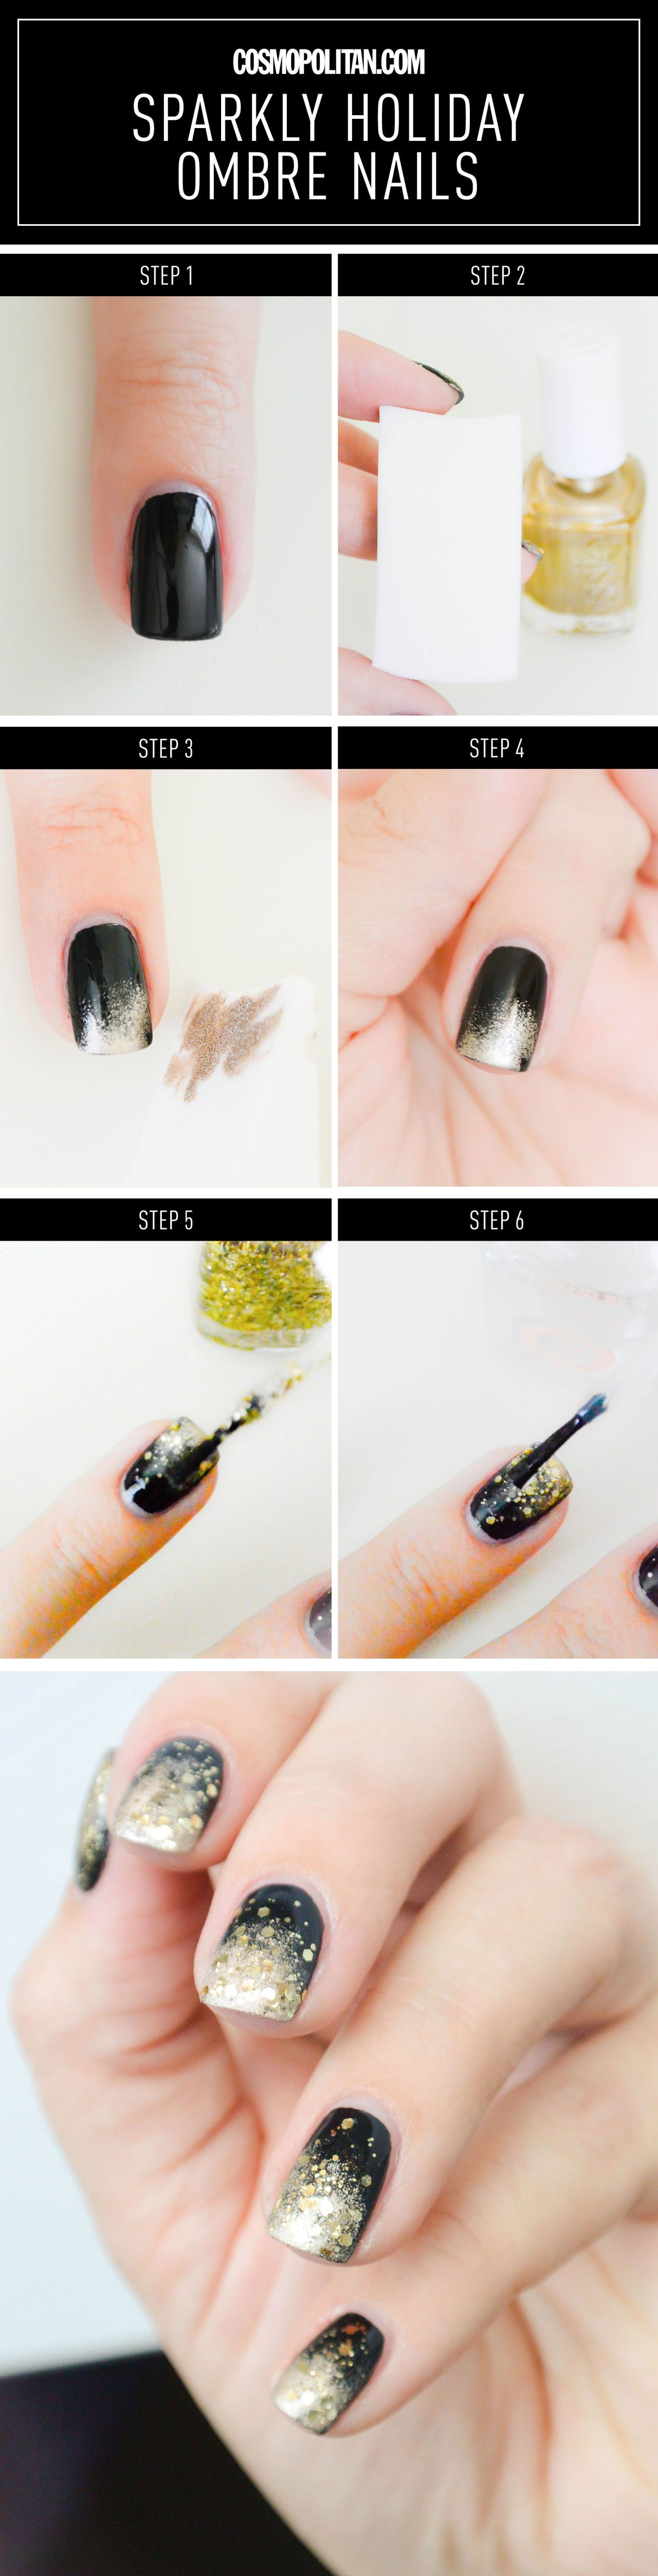 Nail Art How-To: Sparkly Black and Gold Ombré Mani | Negro ...